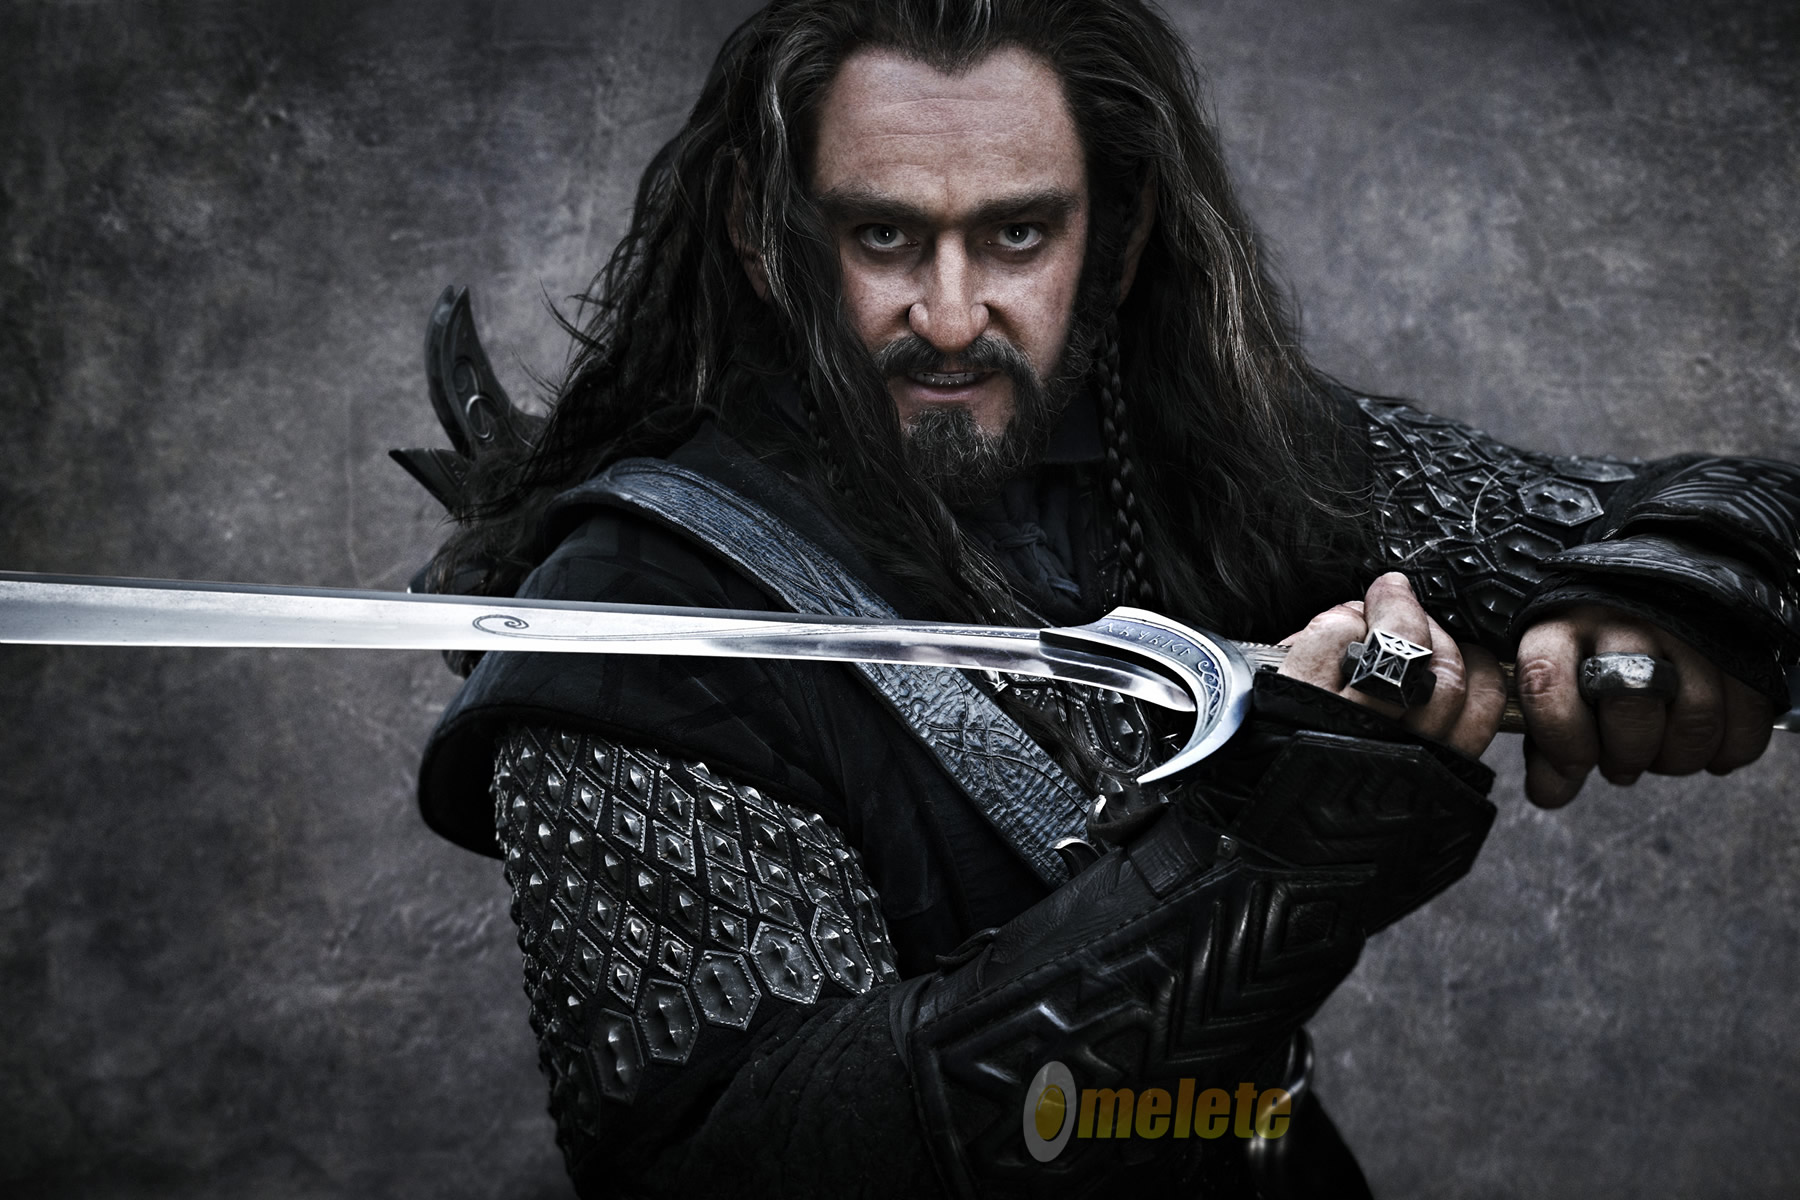 http://collider.com/wp-content/uploads/thorin-oakenshield-the-hobbit-movie-image.jpg